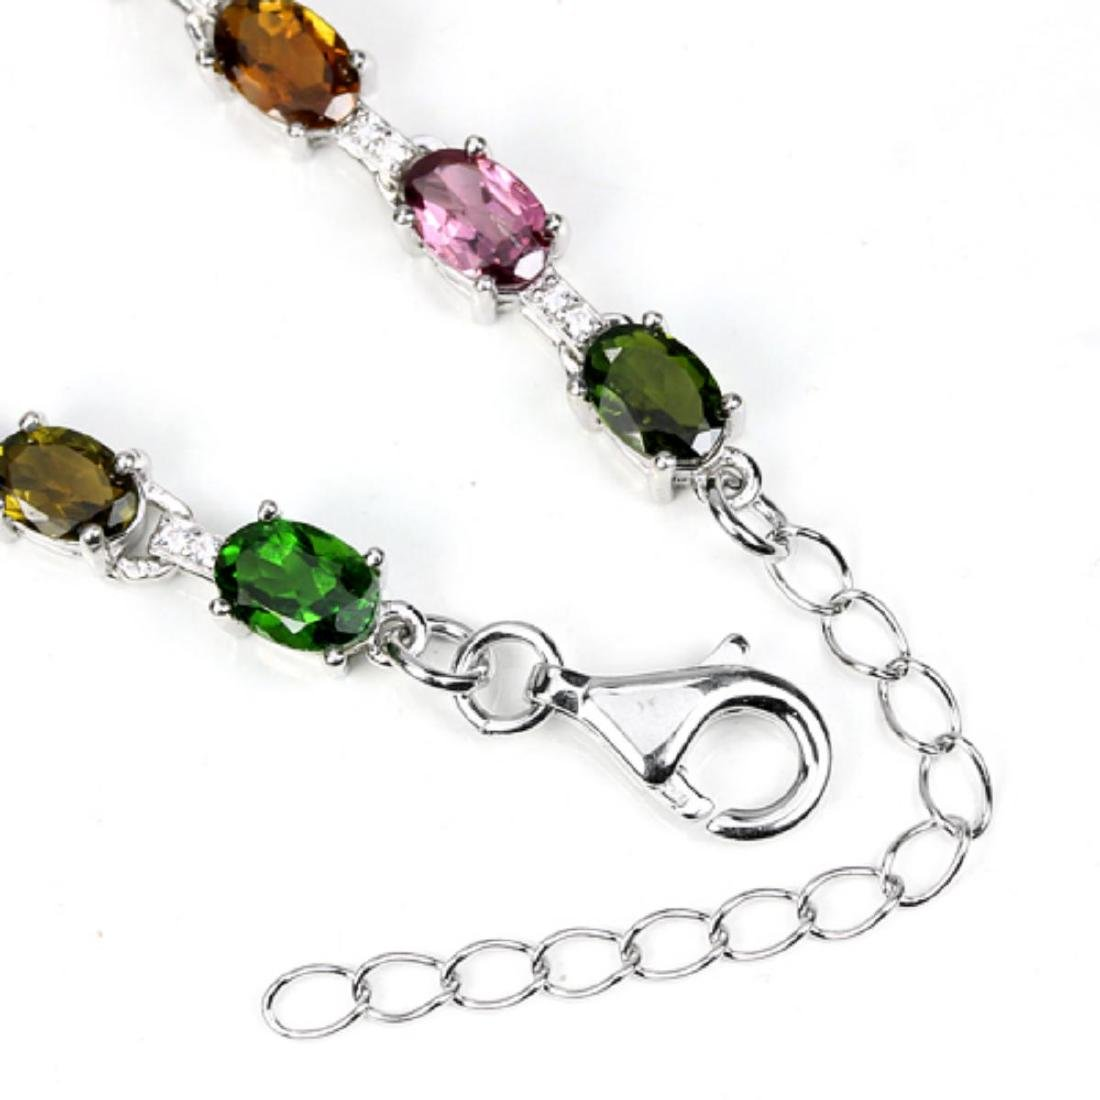 Natural Fancy Tourmaline & Chrome Dioposide Bracelet - 3